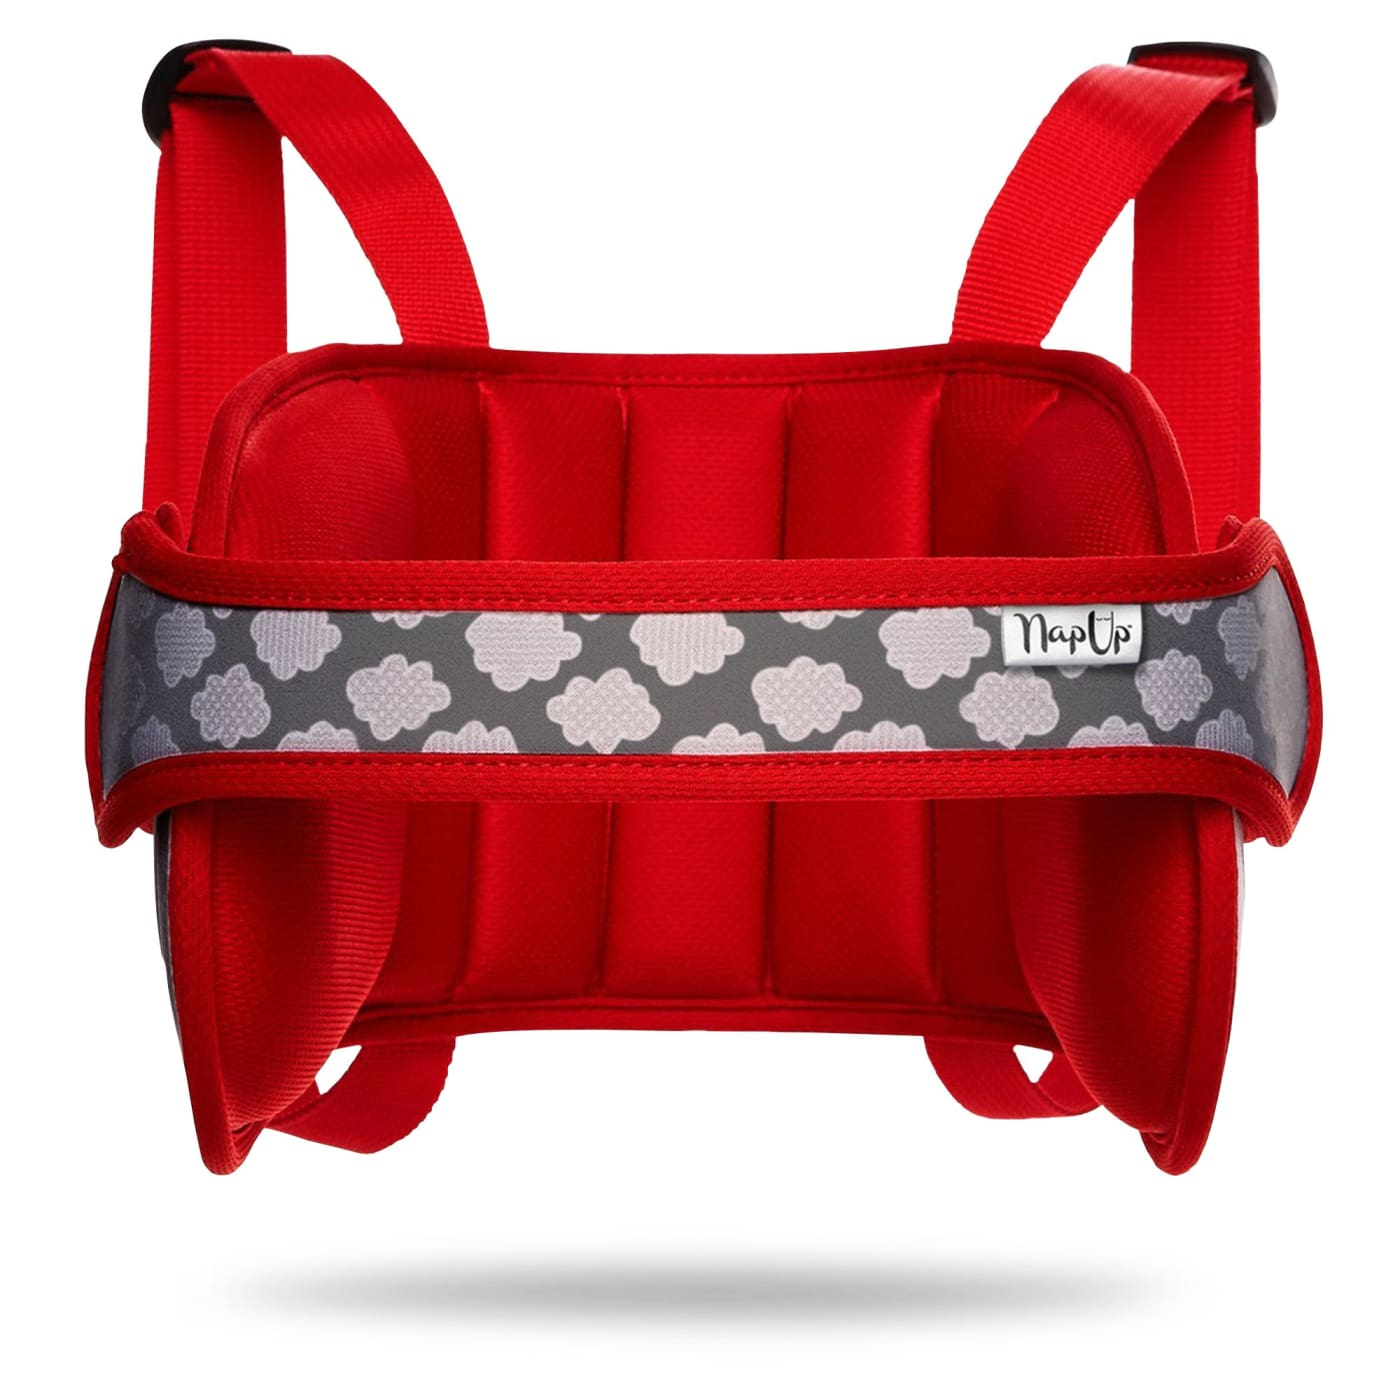 Nap Up - Red - CAR SEATS - HEAD SUPPORTS/HARNESS COVERS